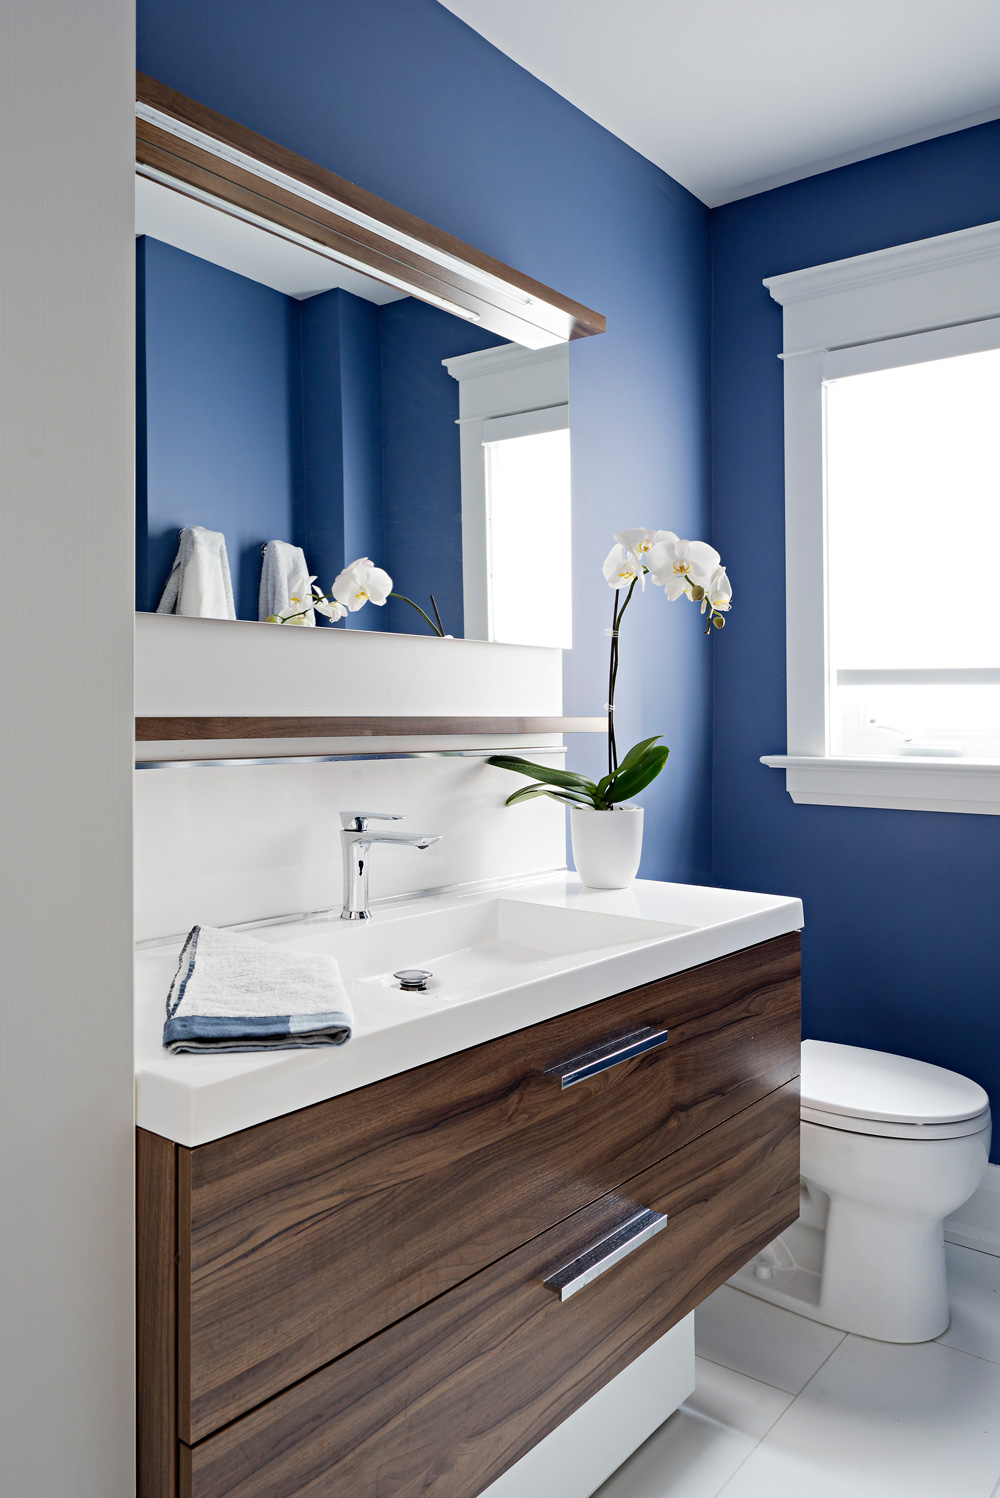 Small family bathroom with lots of hidden storage.